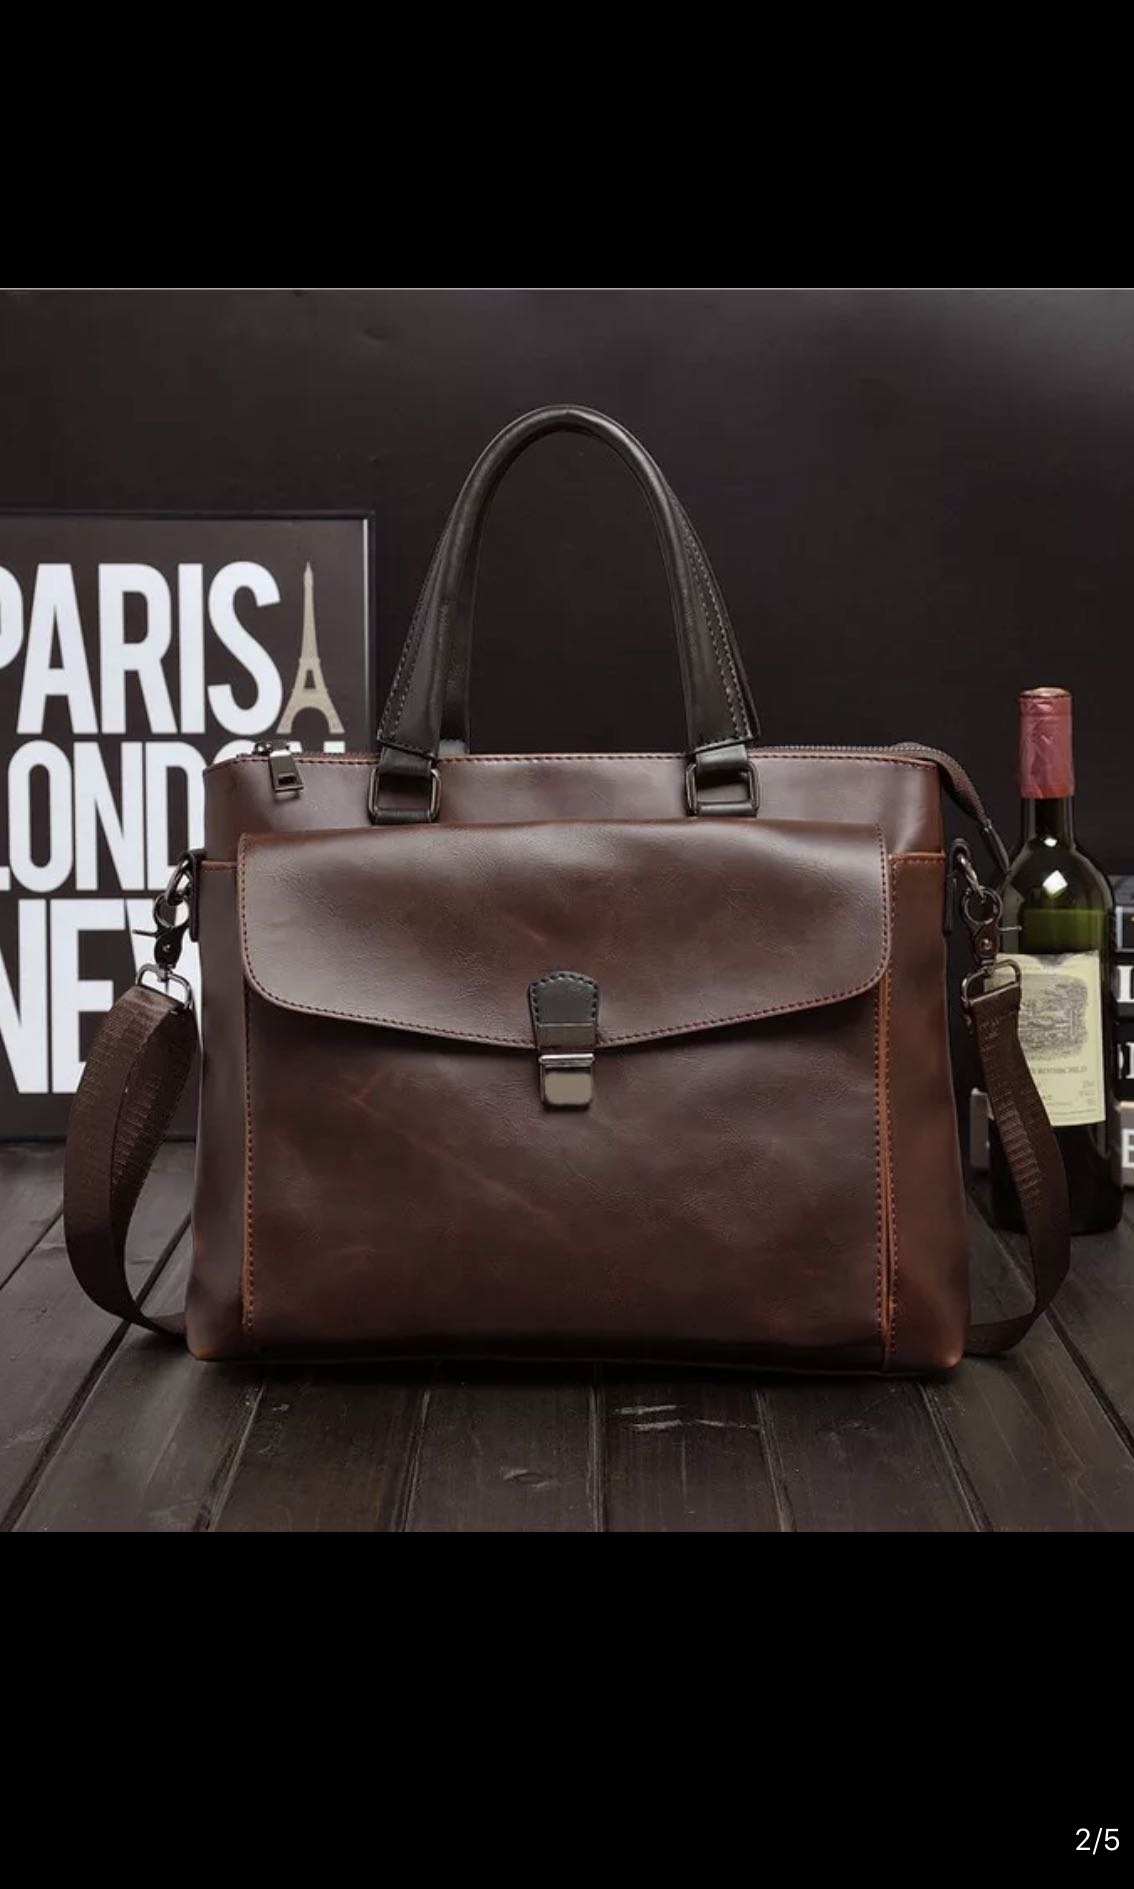 b85f87786a Mens Formal Office Bag, Crazy Horse Leather Laptop Bag, Men's Fashion, Bags  & Wallets, Briefcases on Carousell